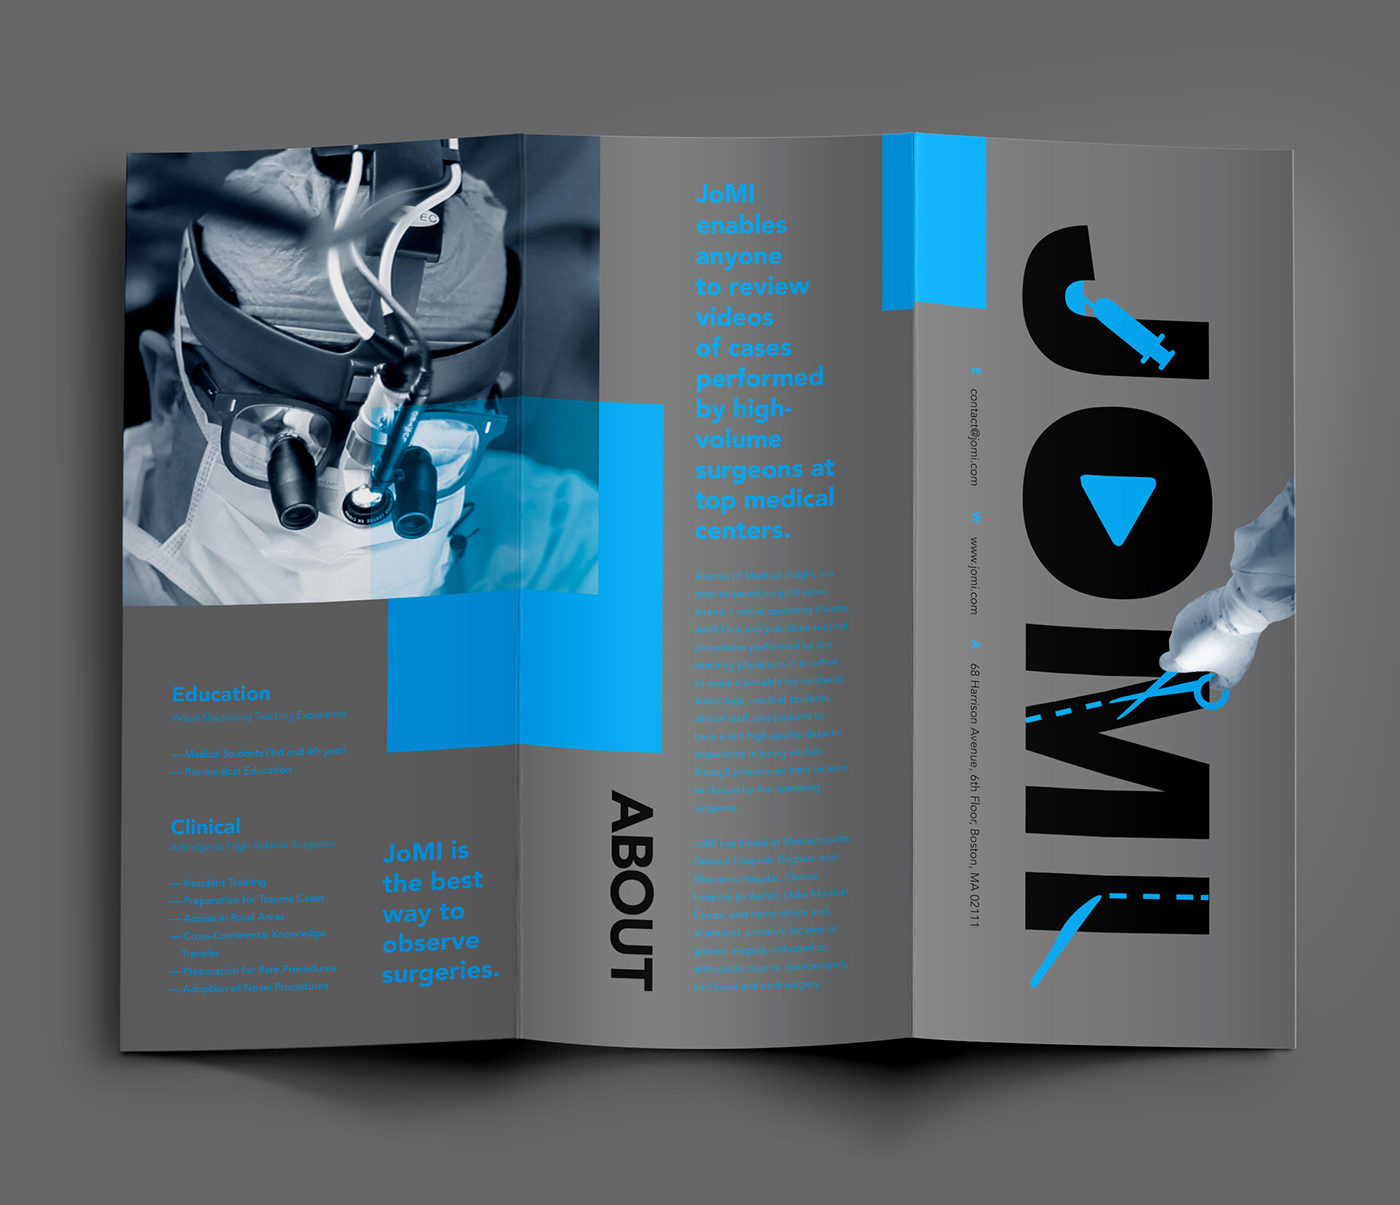 JOMI surgical video rebranding campaign on Behance